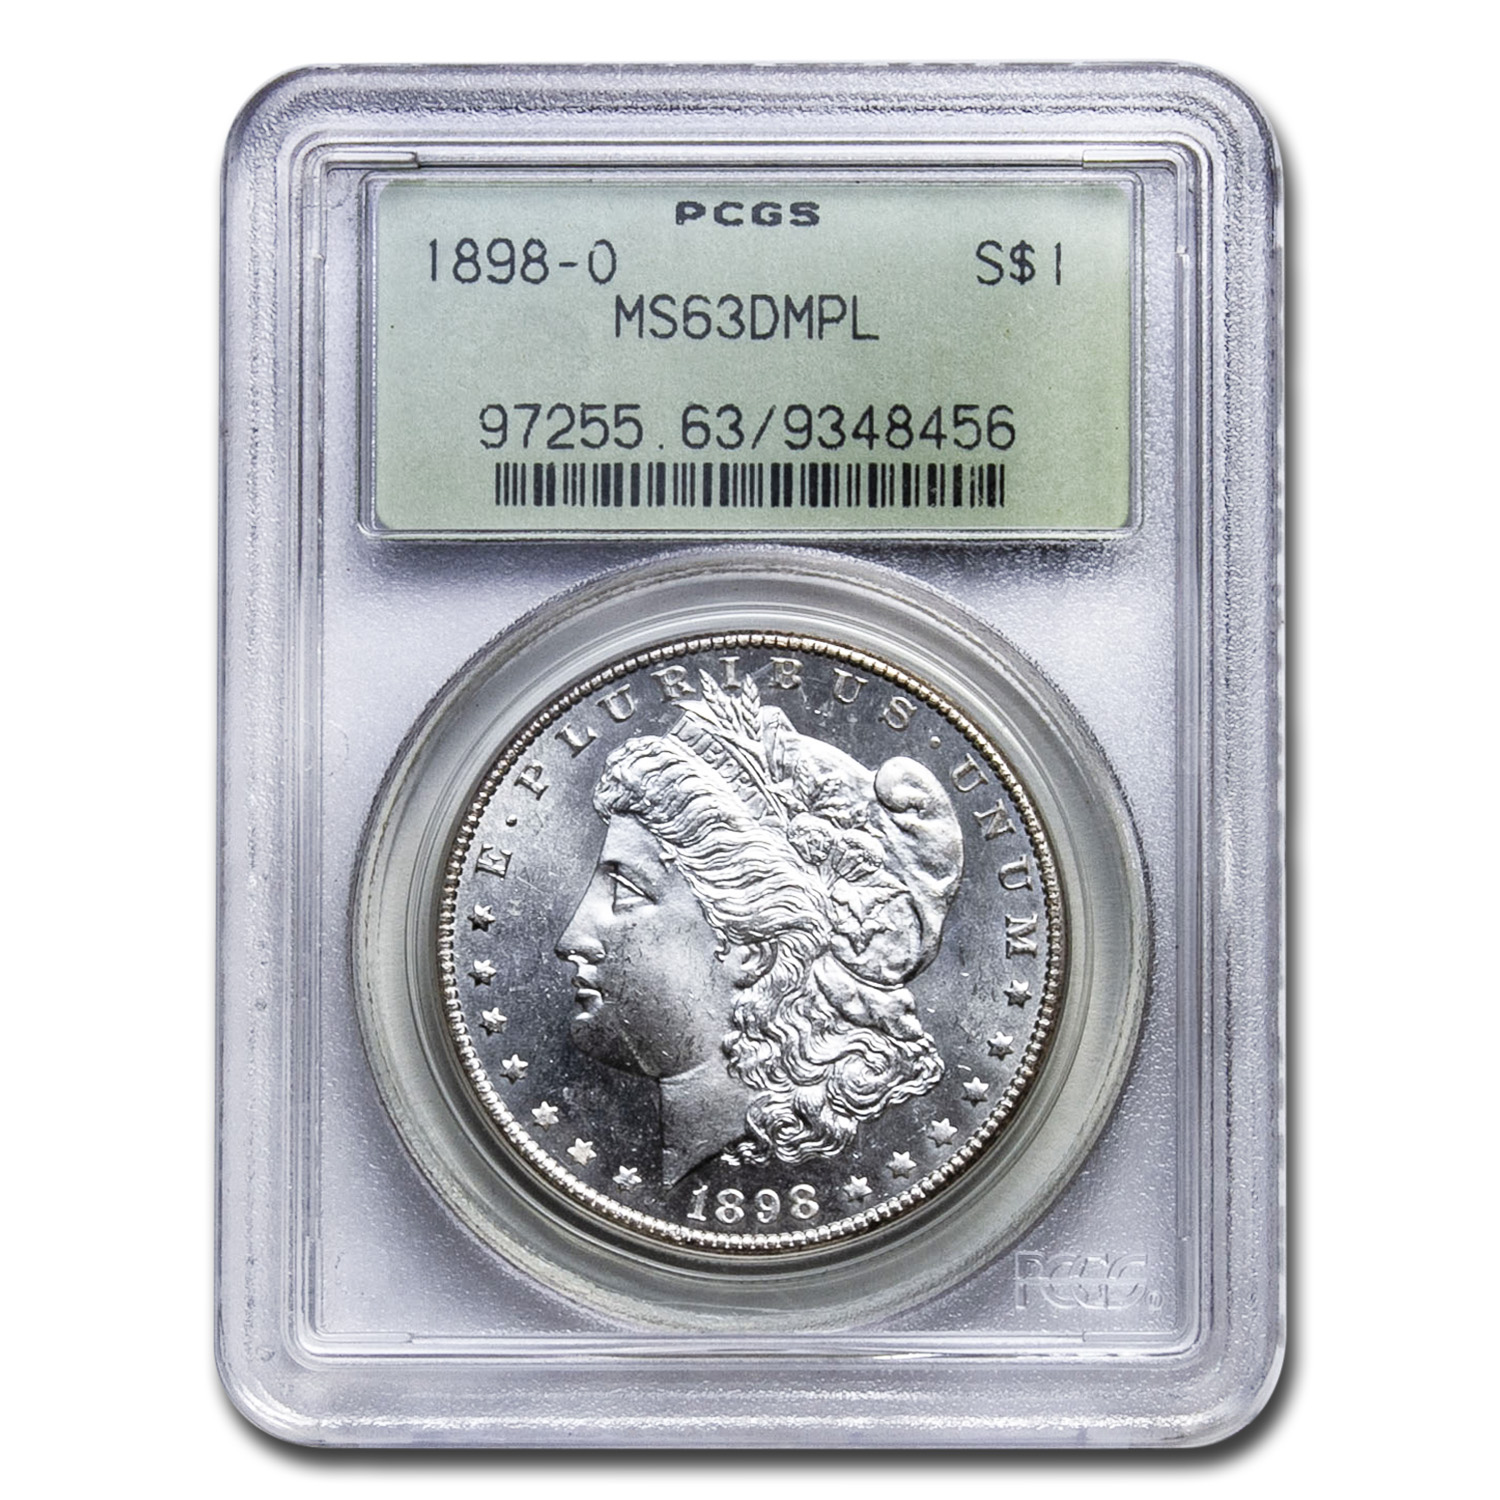 1898-O Morgan Dollar MS-63 DMPL Deep Mirror Proof Like PCGS